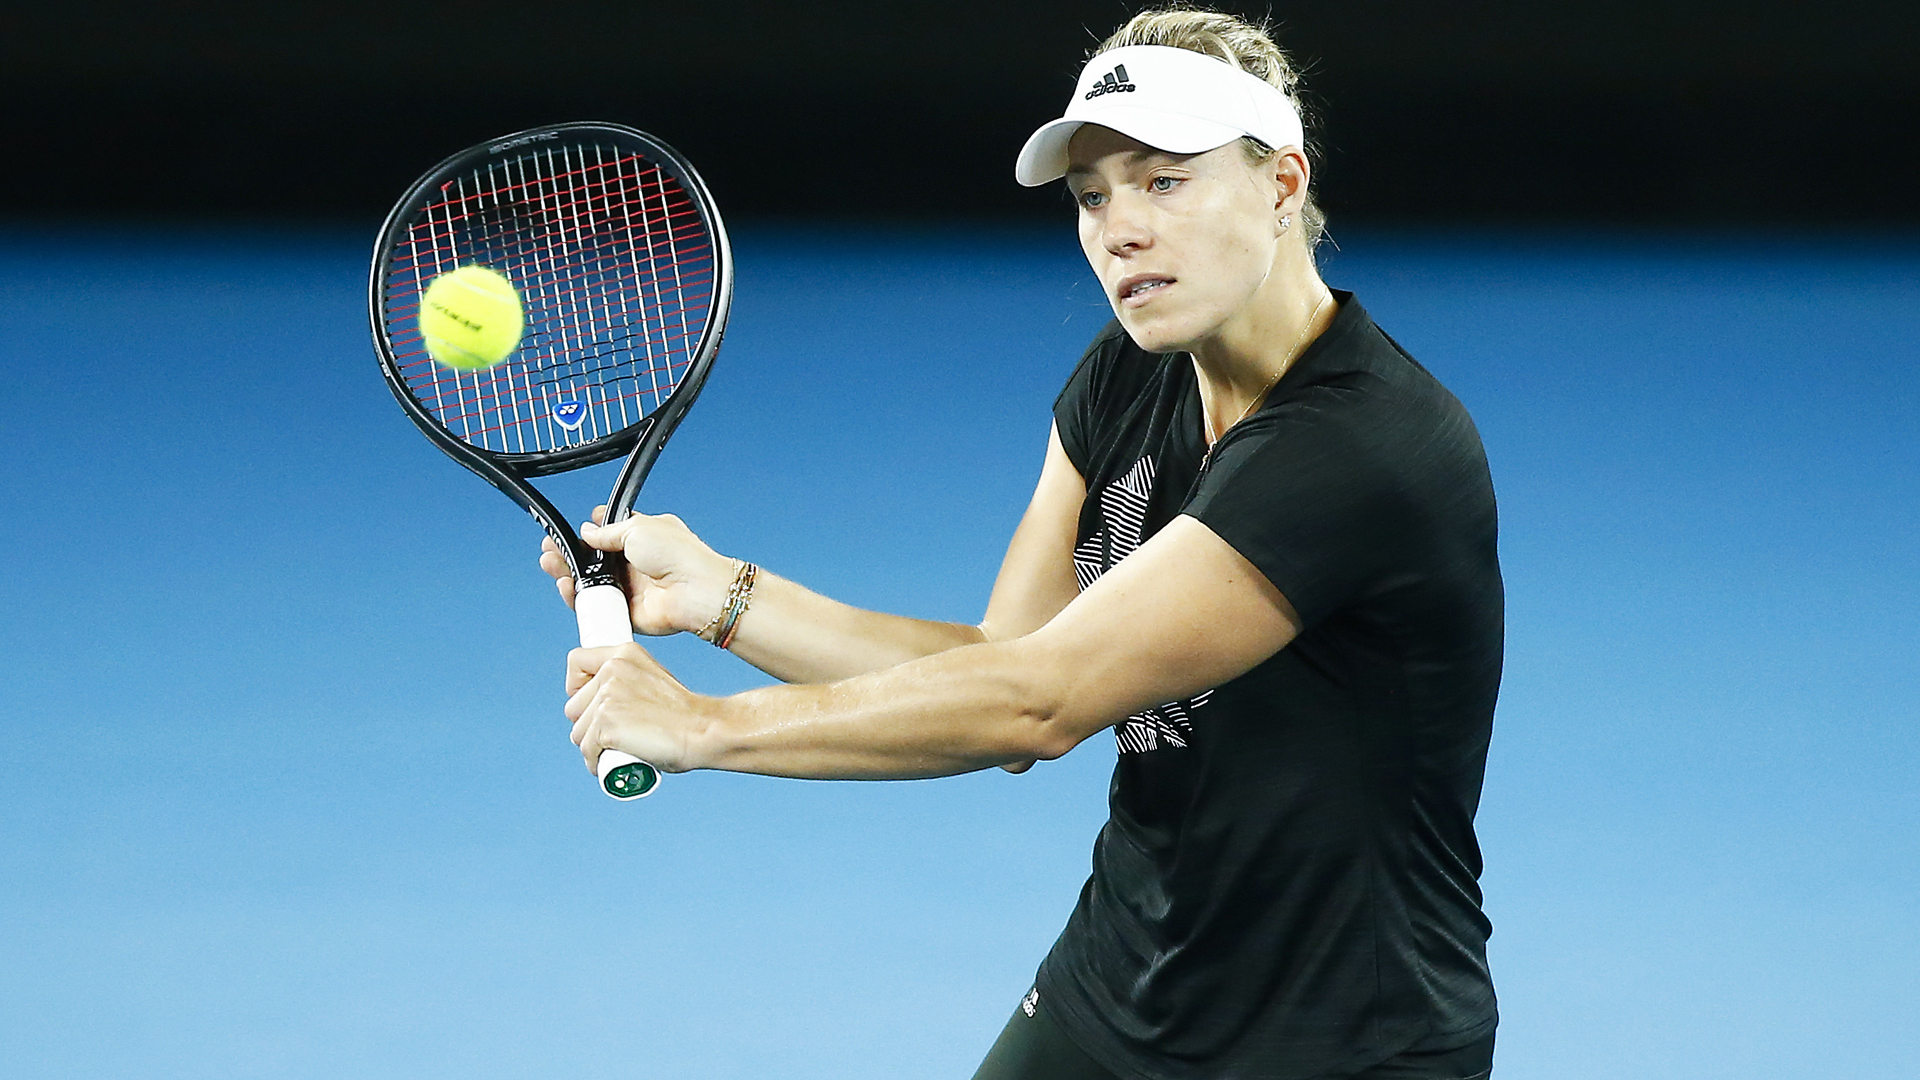 Australian Open 2020: Kerber hopeful over hamstring injury